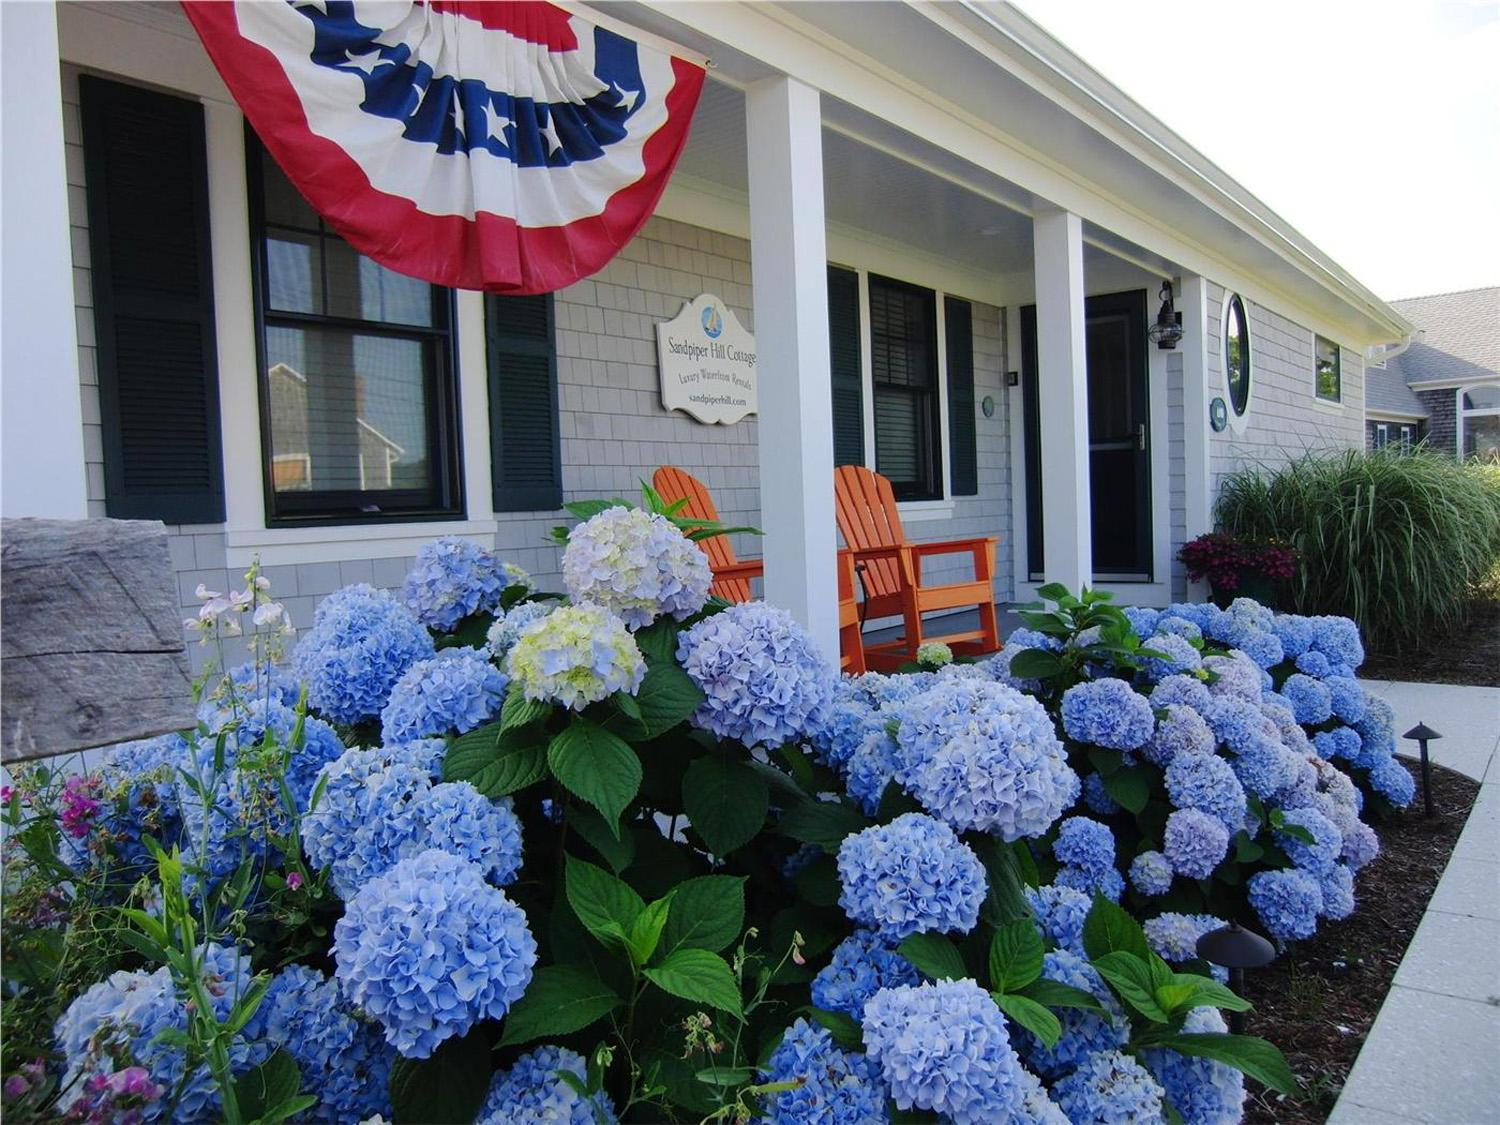 We've pulled 5 fast facts about one of the Cape and Islands' most beautiful residents, hydrangeas. Many of the vacation rentals on our site are decorated with the colorful flowers, which keep their vibrant color for much of the season.